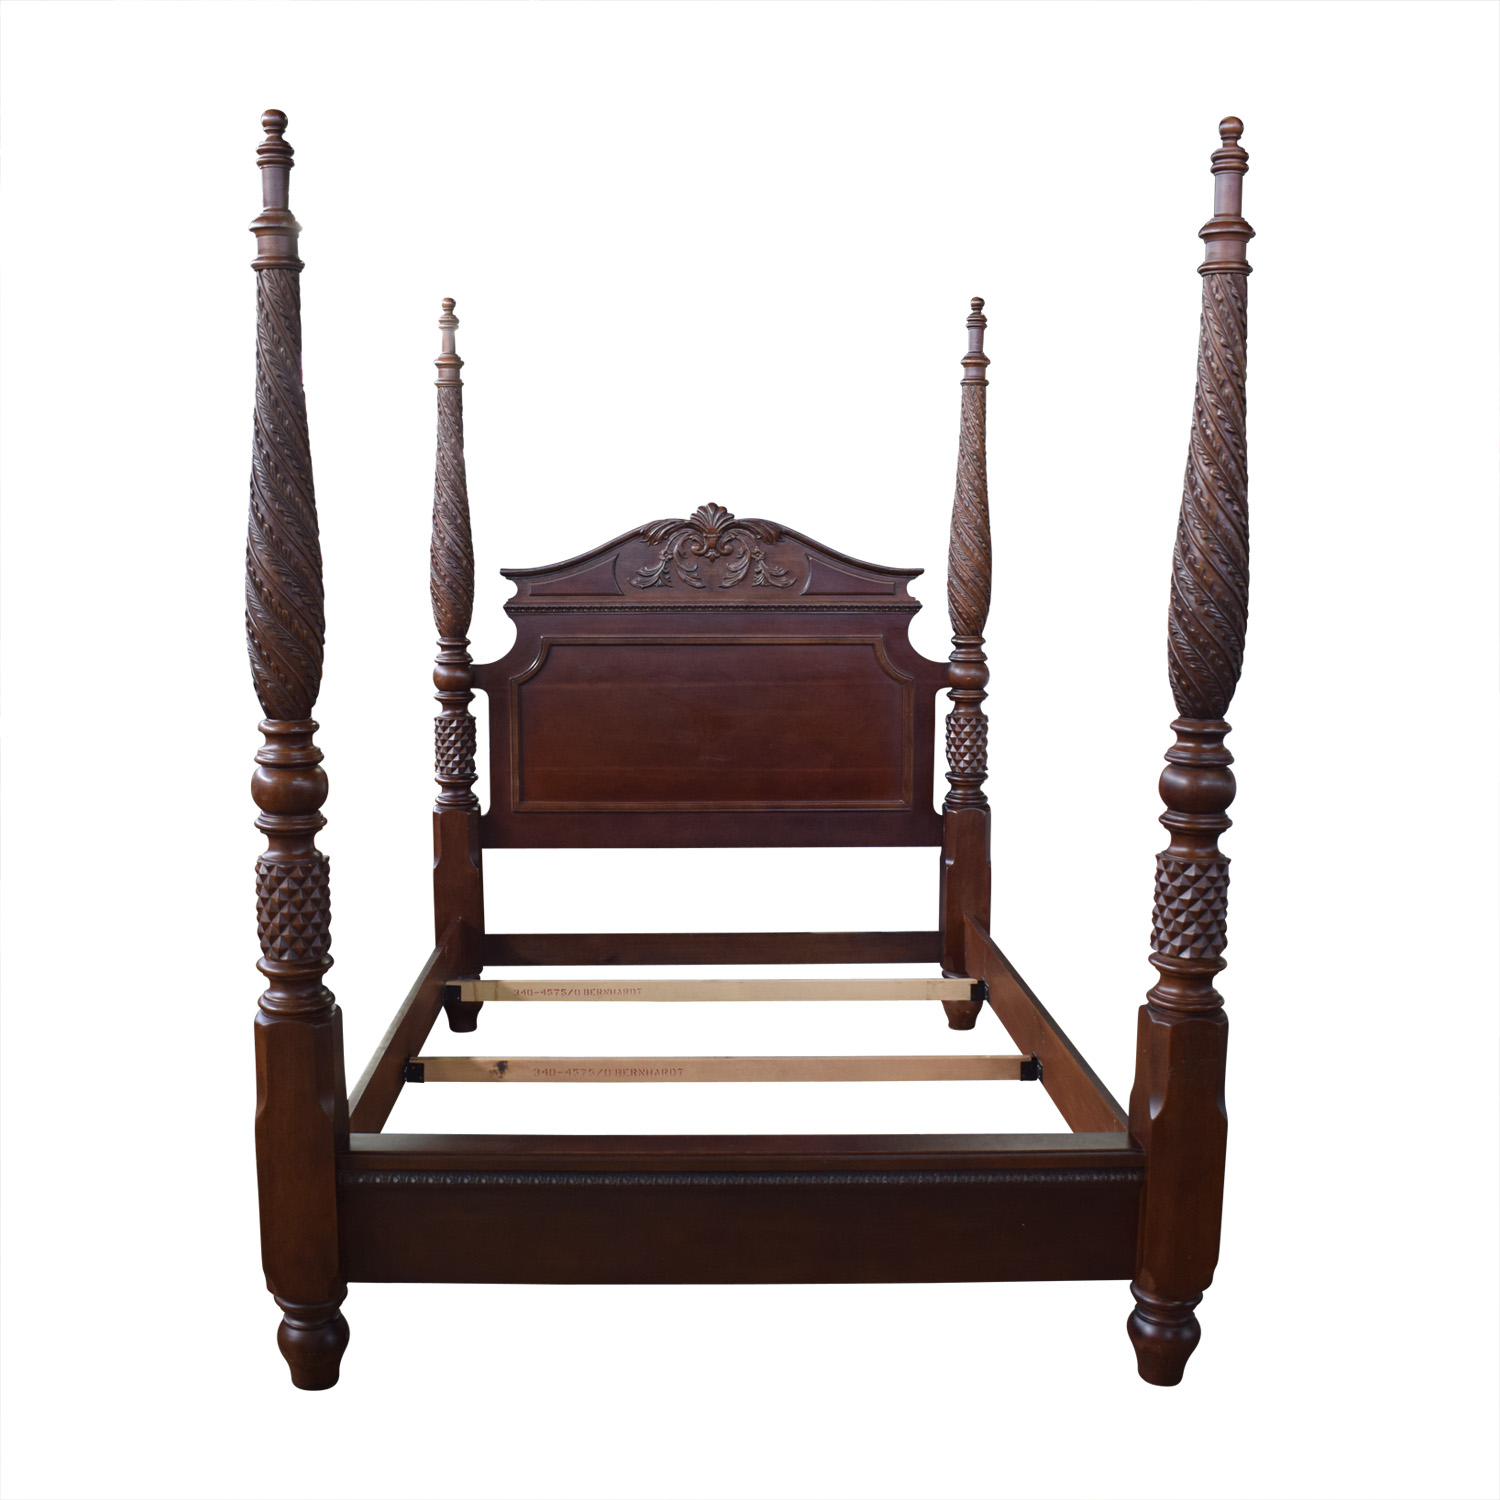 Bernhardt Bernhardt Carved Mahogany Queen Bed used